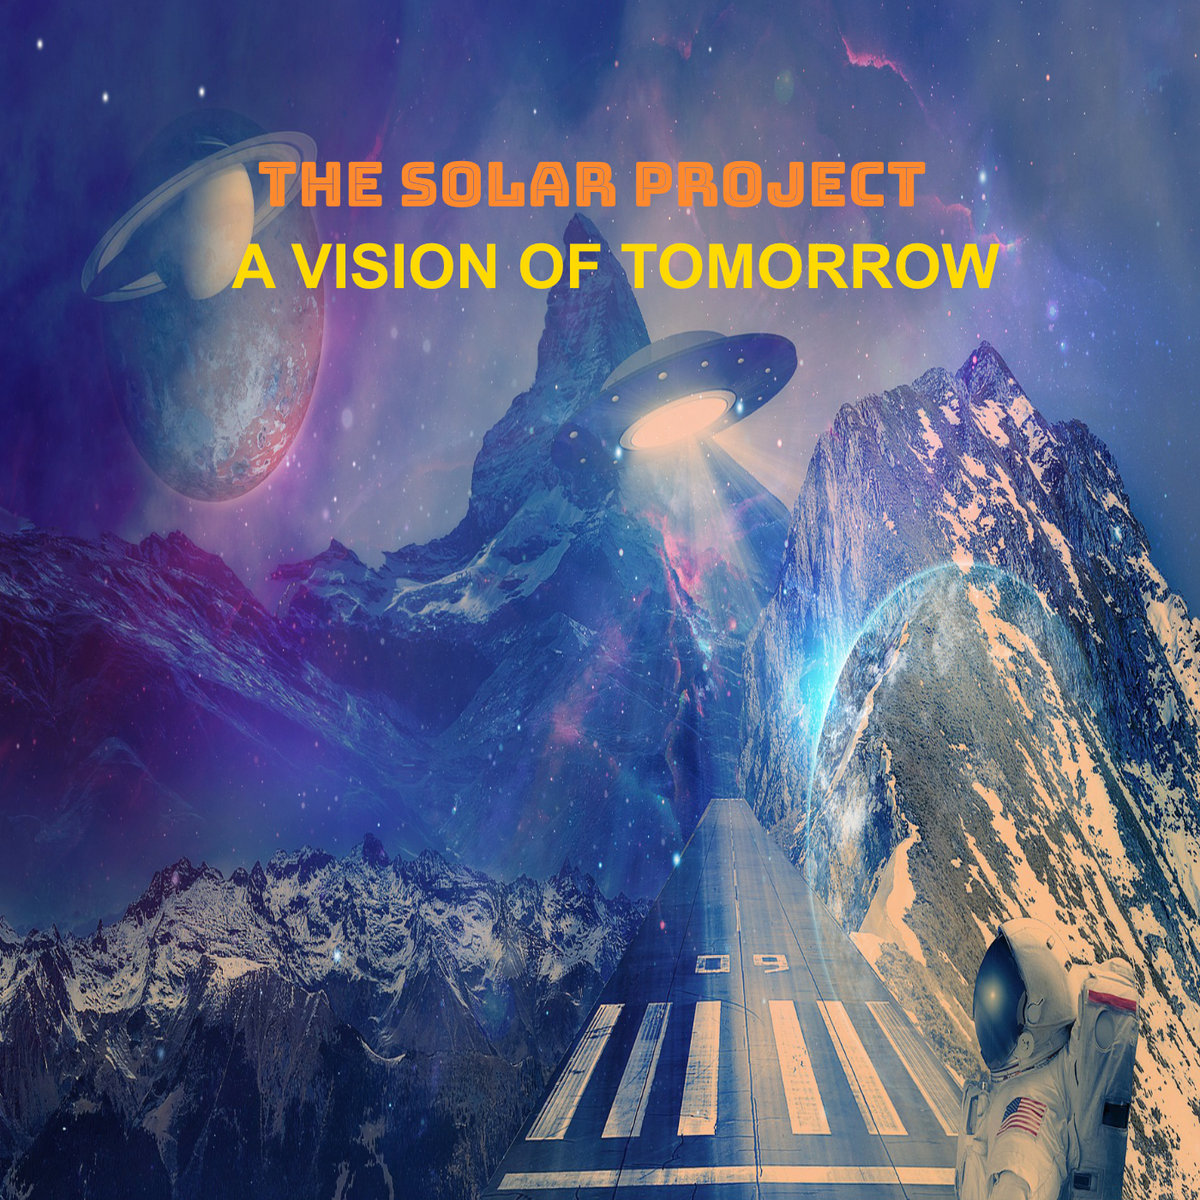 A Vision of Tomorrow by The Solar Project